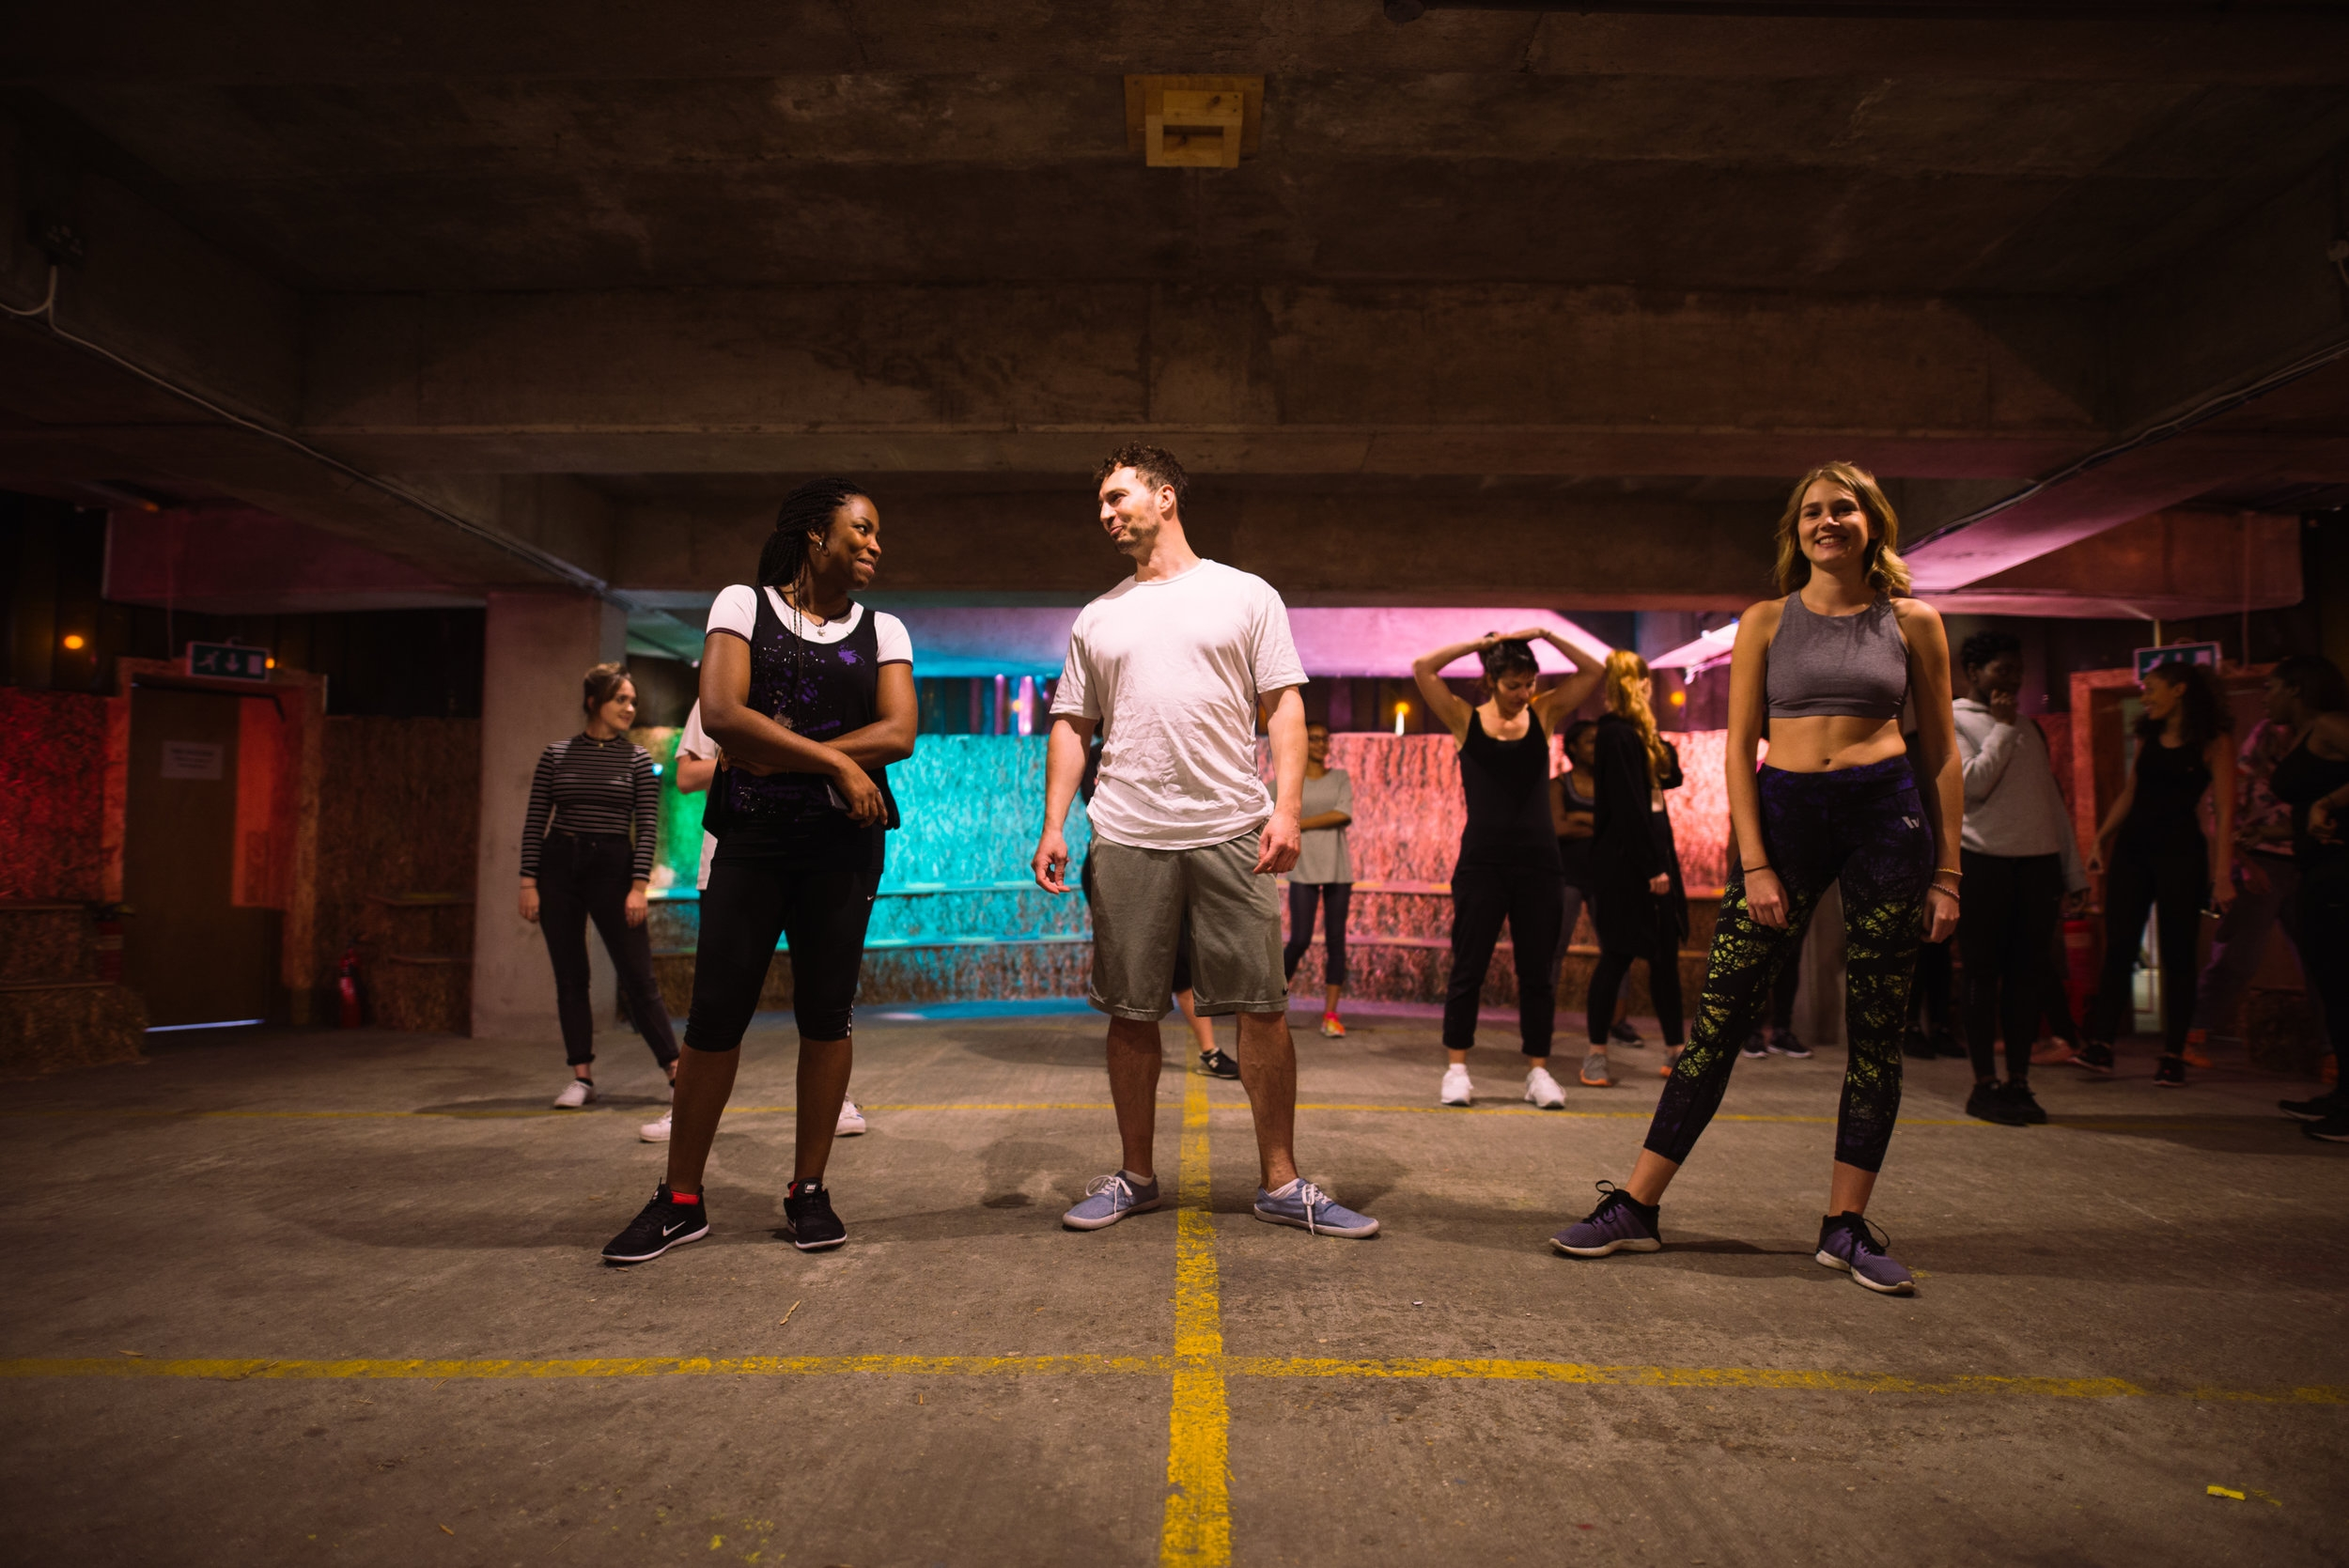 HipHop Circuits - In this Circuits class, you'll move around various exercise stations and workout different muscle groups.You'll work hard, testing both your cardio, strength and endurance for an all-round challenge. With moves can be adapted to all physical abilities.